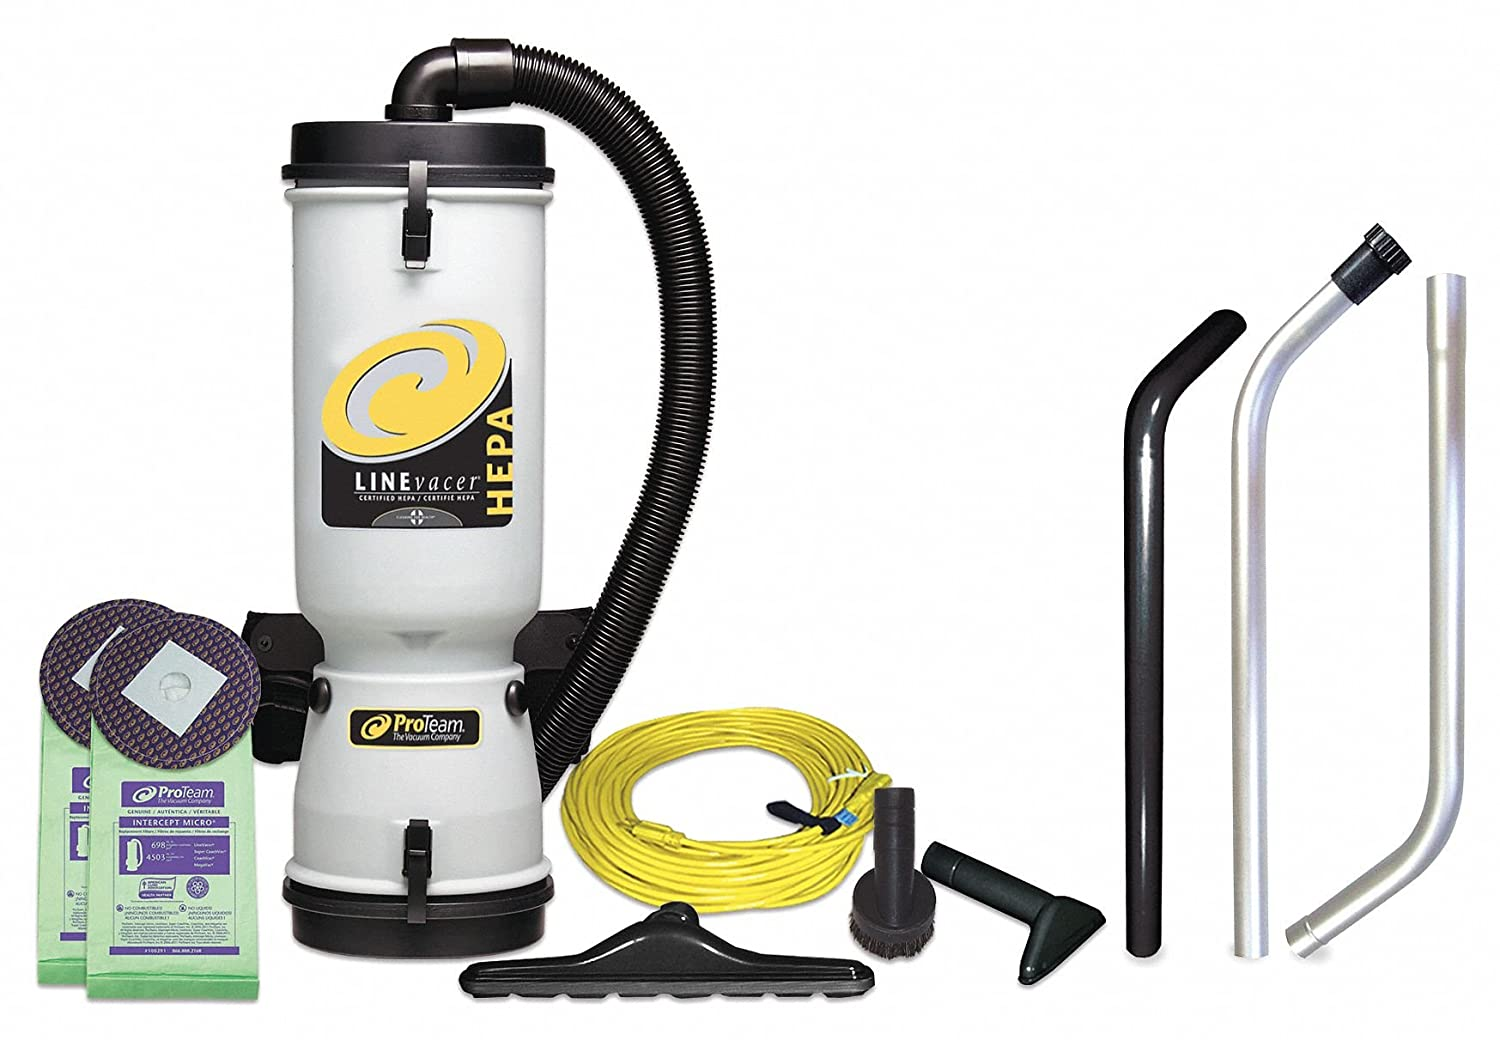 Pro-Team HEPA LineVacer Backpack Vacuum